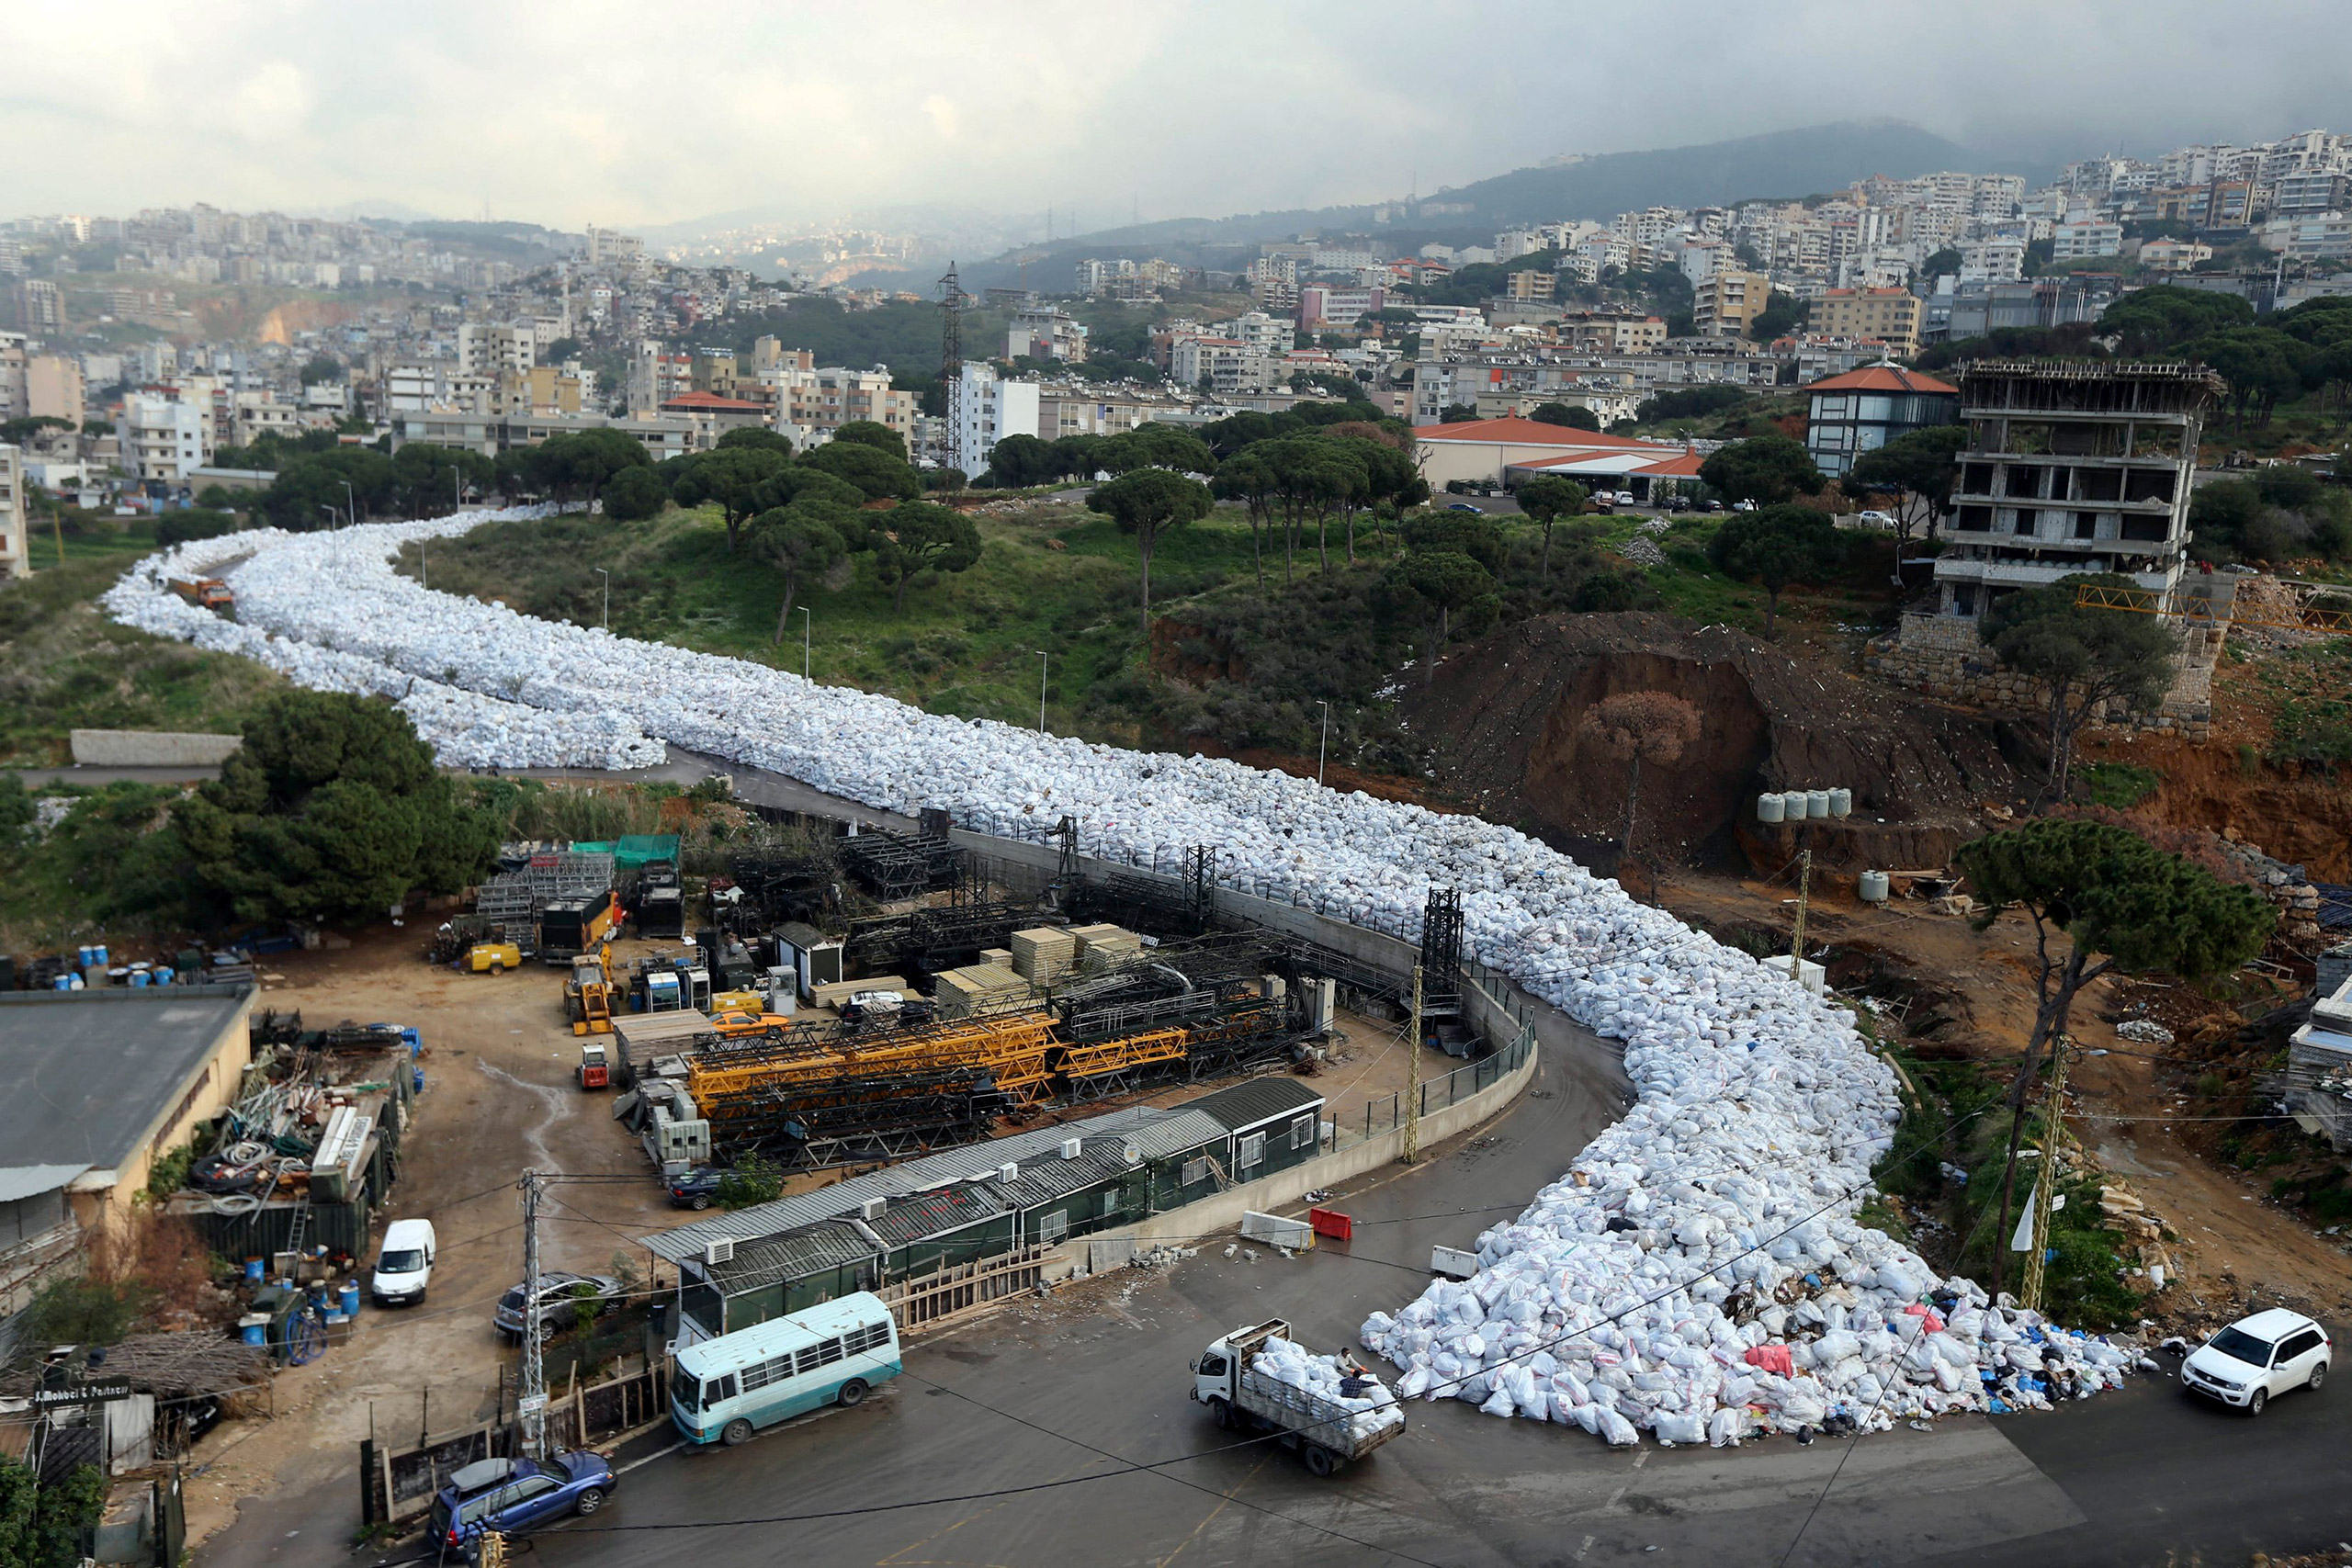 Thousands of packed garbage bags in Jdeideh, a northern suburb of Beirut, Lebanon, Feb. 23, 2016. The country has struggled to resolve its trash crisis since last summer.